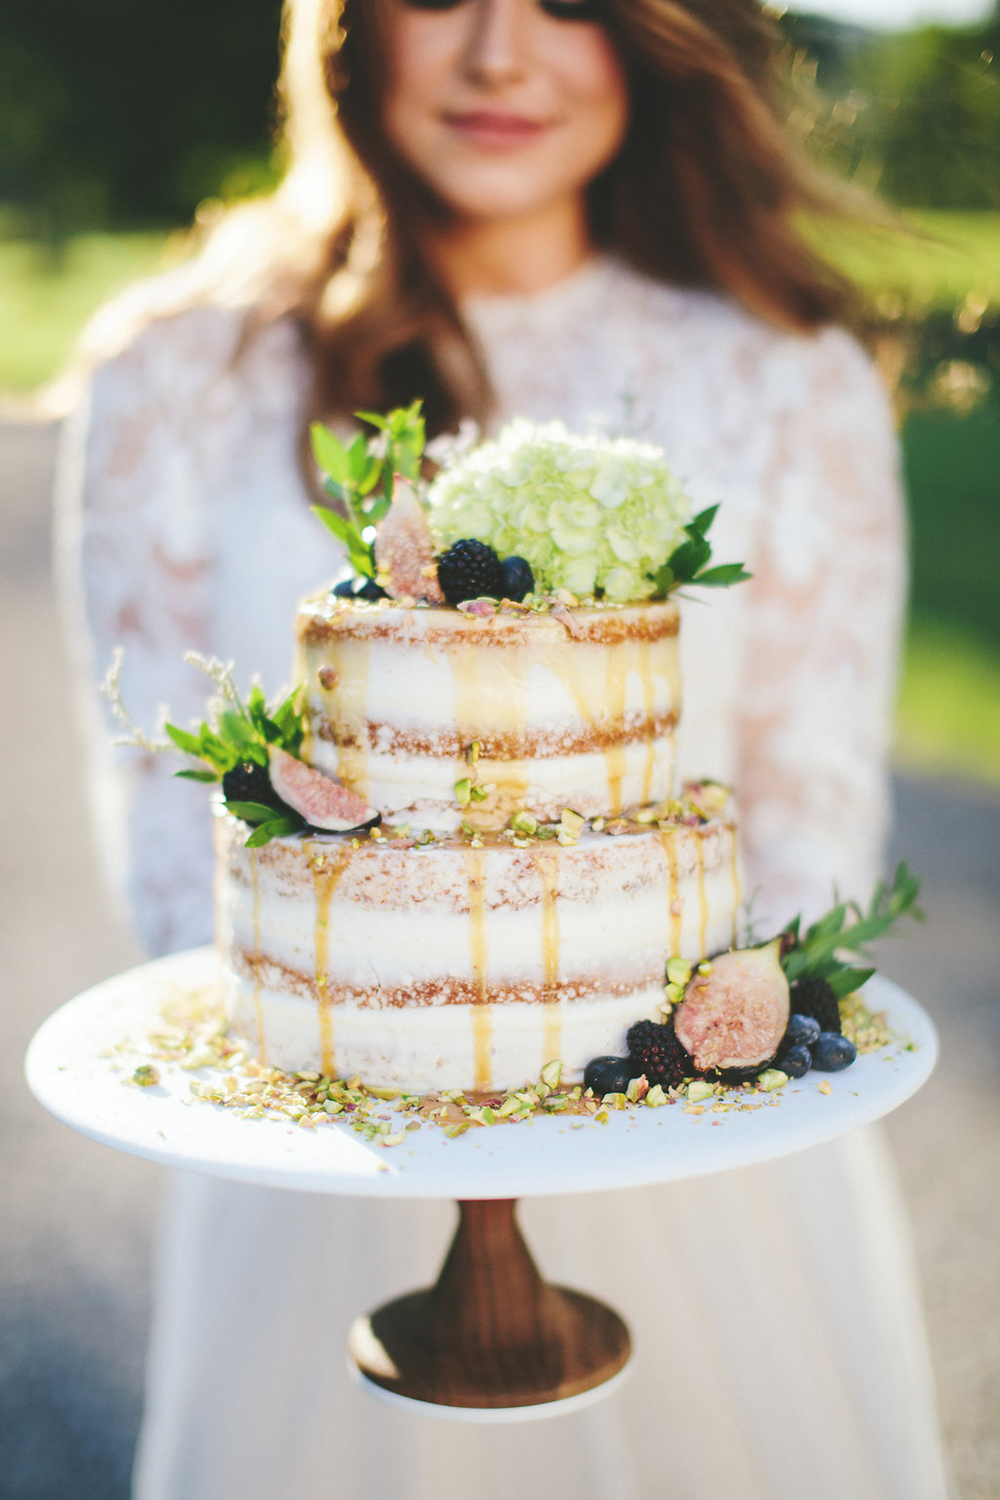 lightly iced wedding cakes with figs - photo by Shots by Cheyenne http://ruffledblog.com/farm-to-table-wedding-inspiration-in-nashville